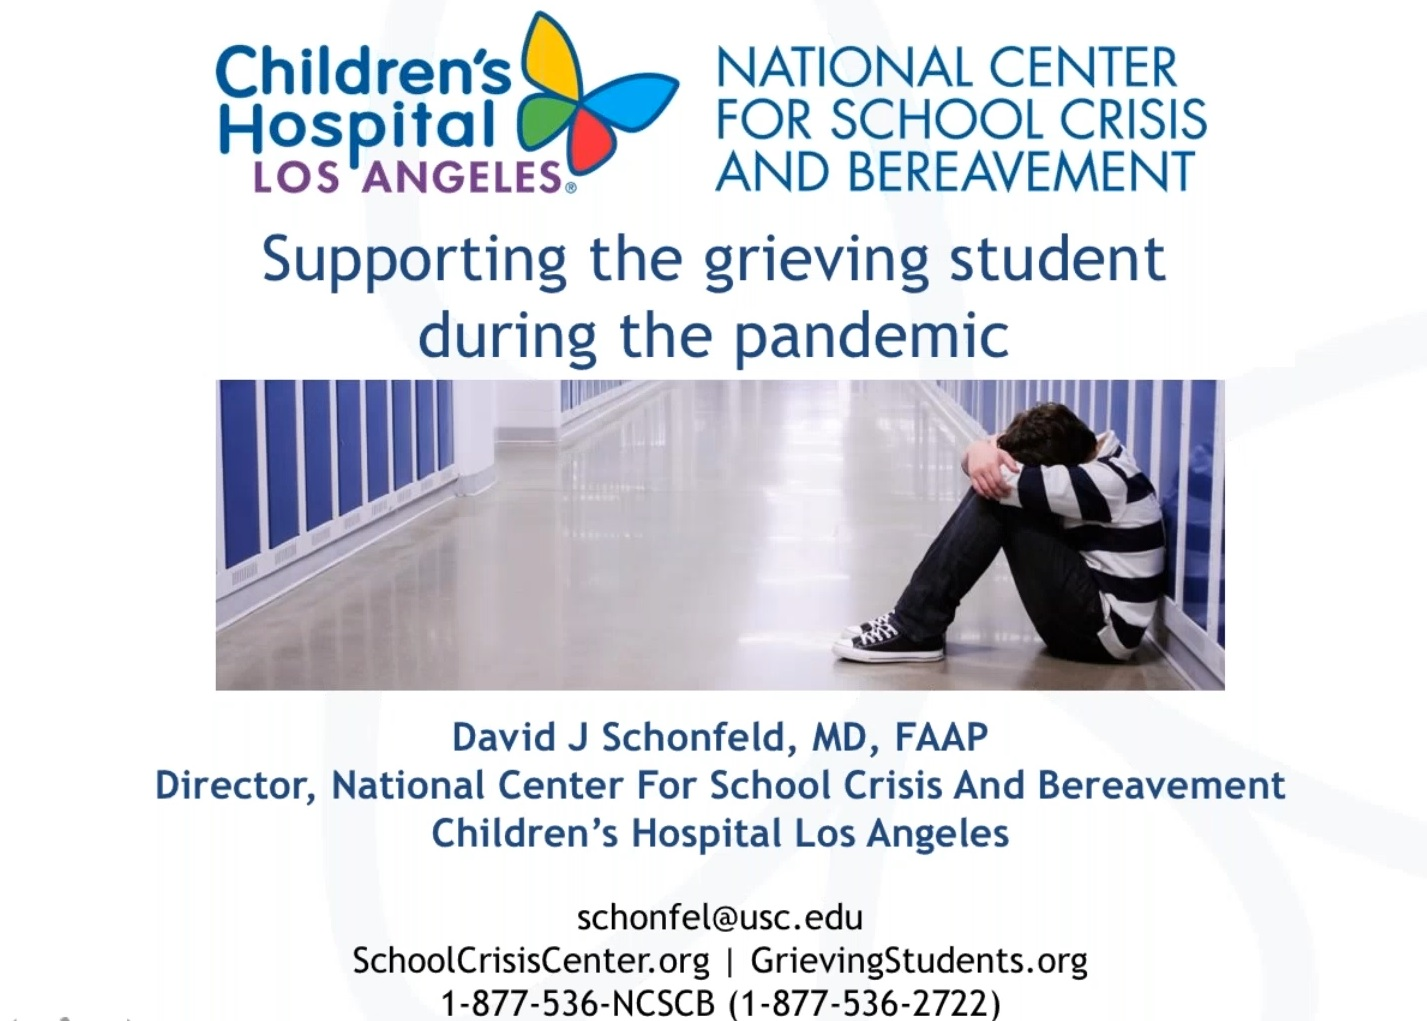 Supporting the Grieving Student During the Pandemic webinar